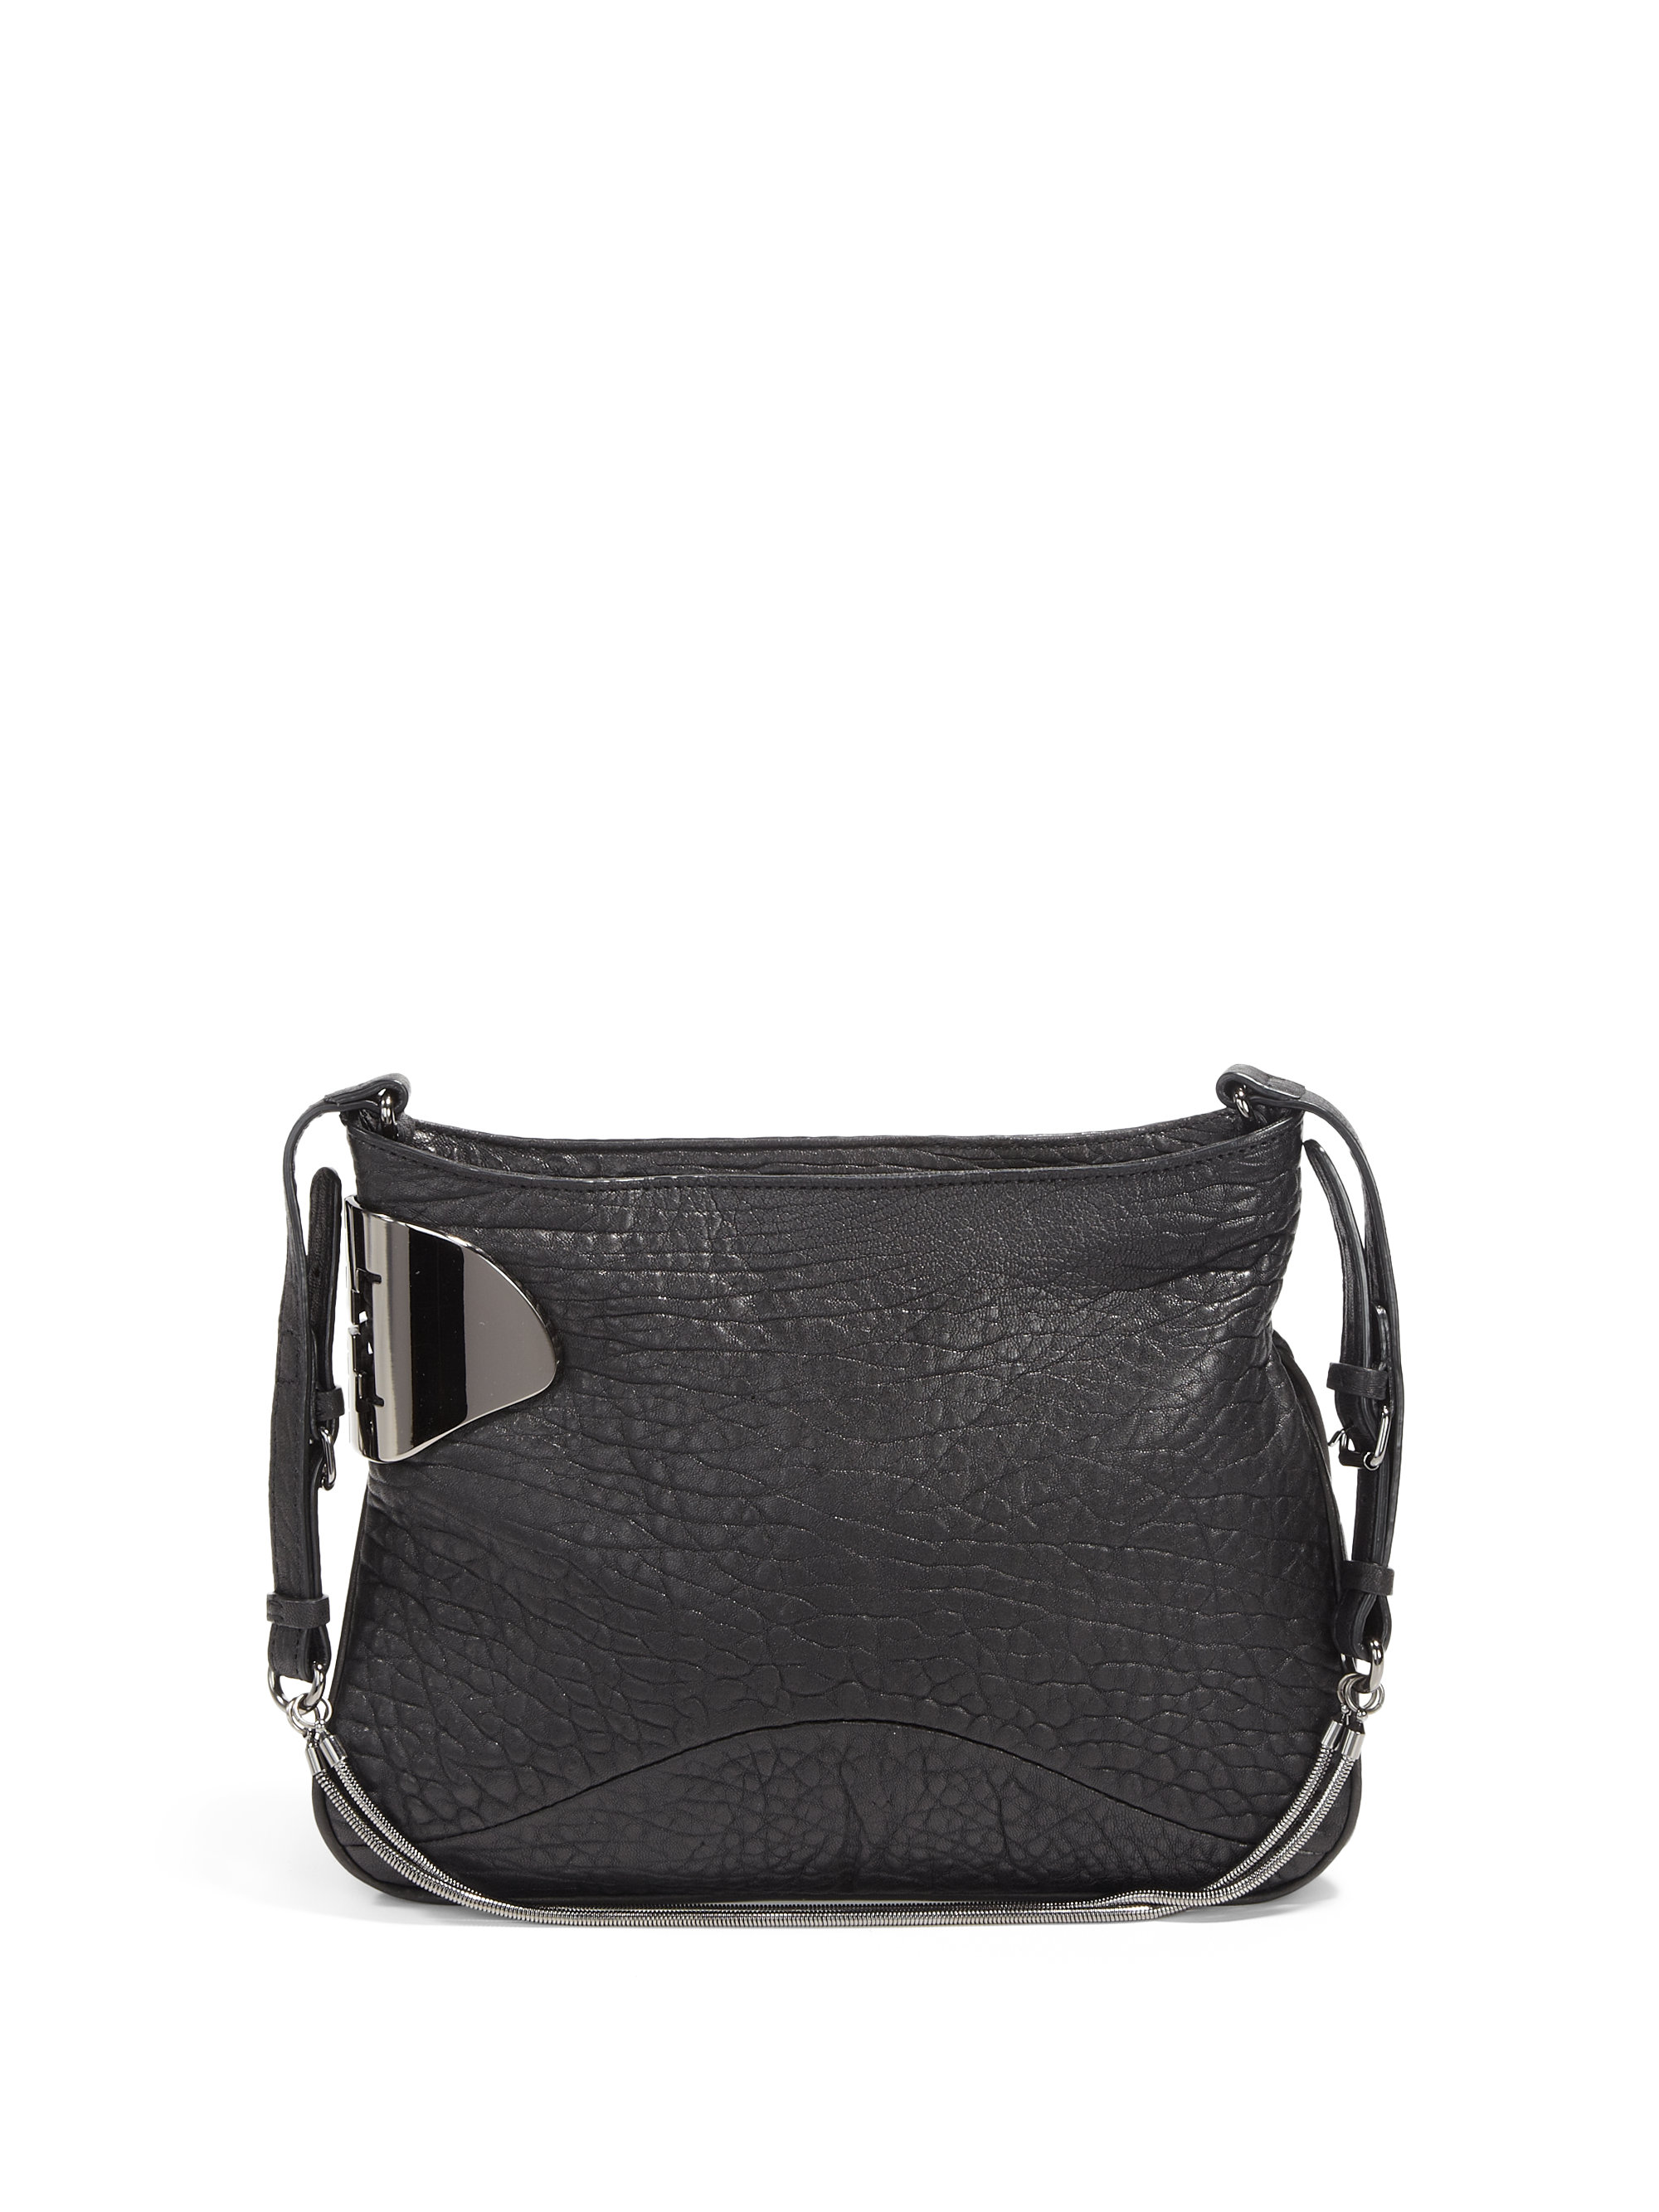 Halston Pebbled Leather Short Shoulder Bag in Black | Lyst